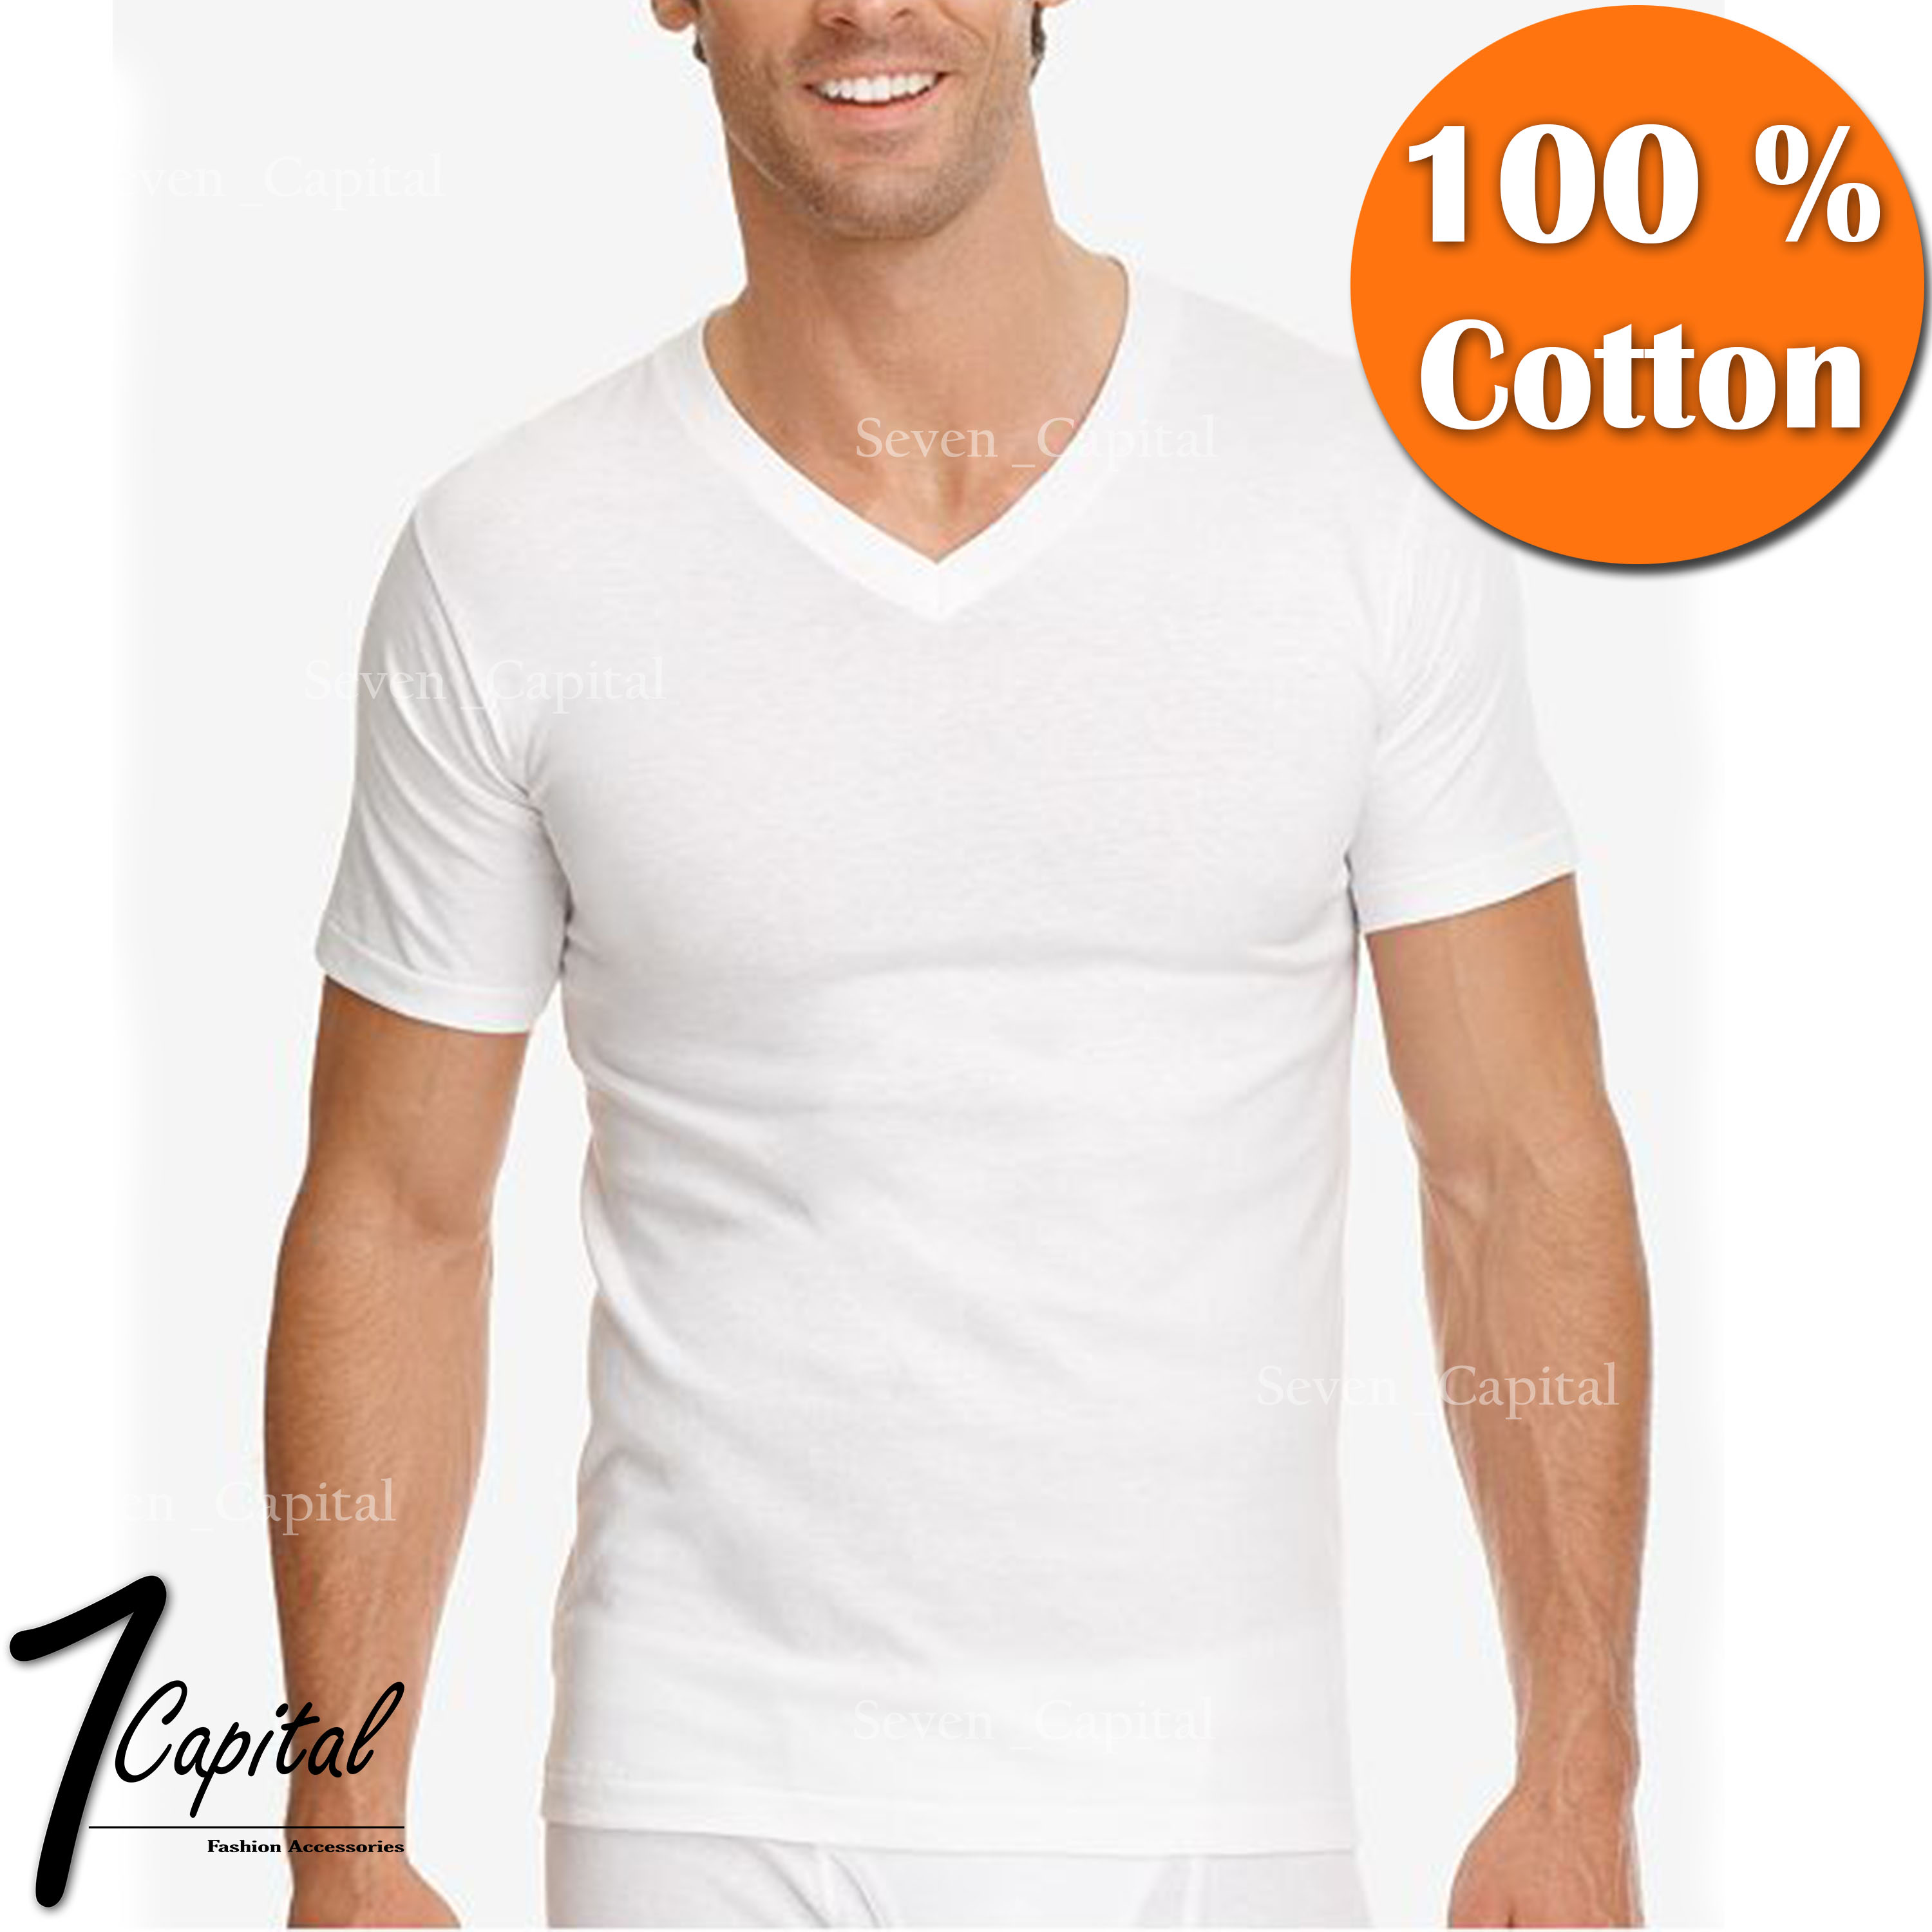 11372023b Details about 3-12 PACK Mens 100% Cotton Tagless Crew V-Neck Undershirt  White T Shirt Tee S-XL